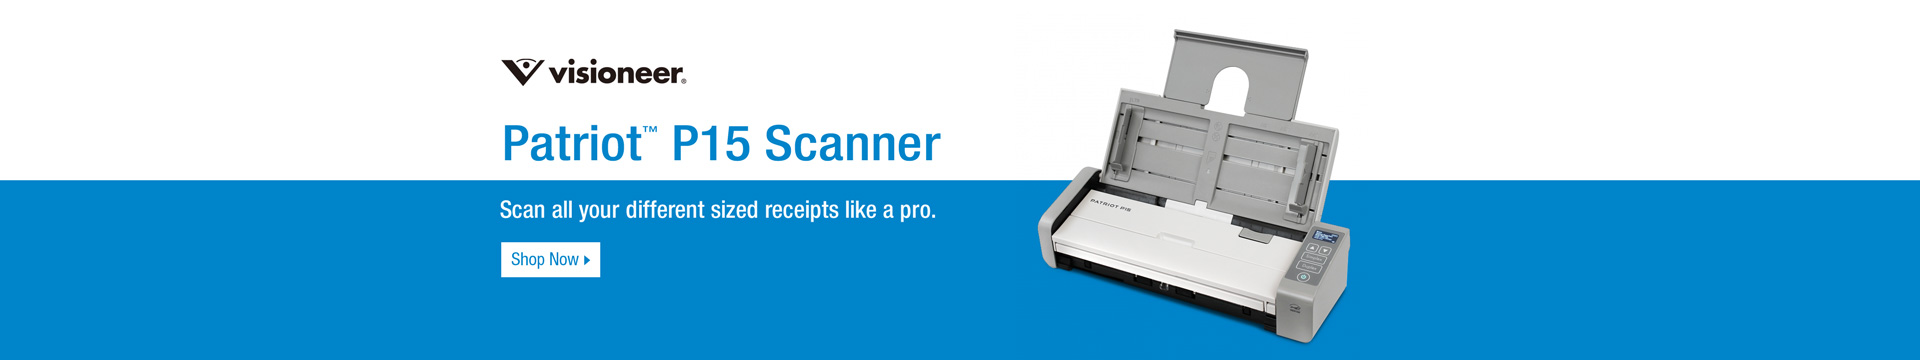 Document Scanners - Newegg com